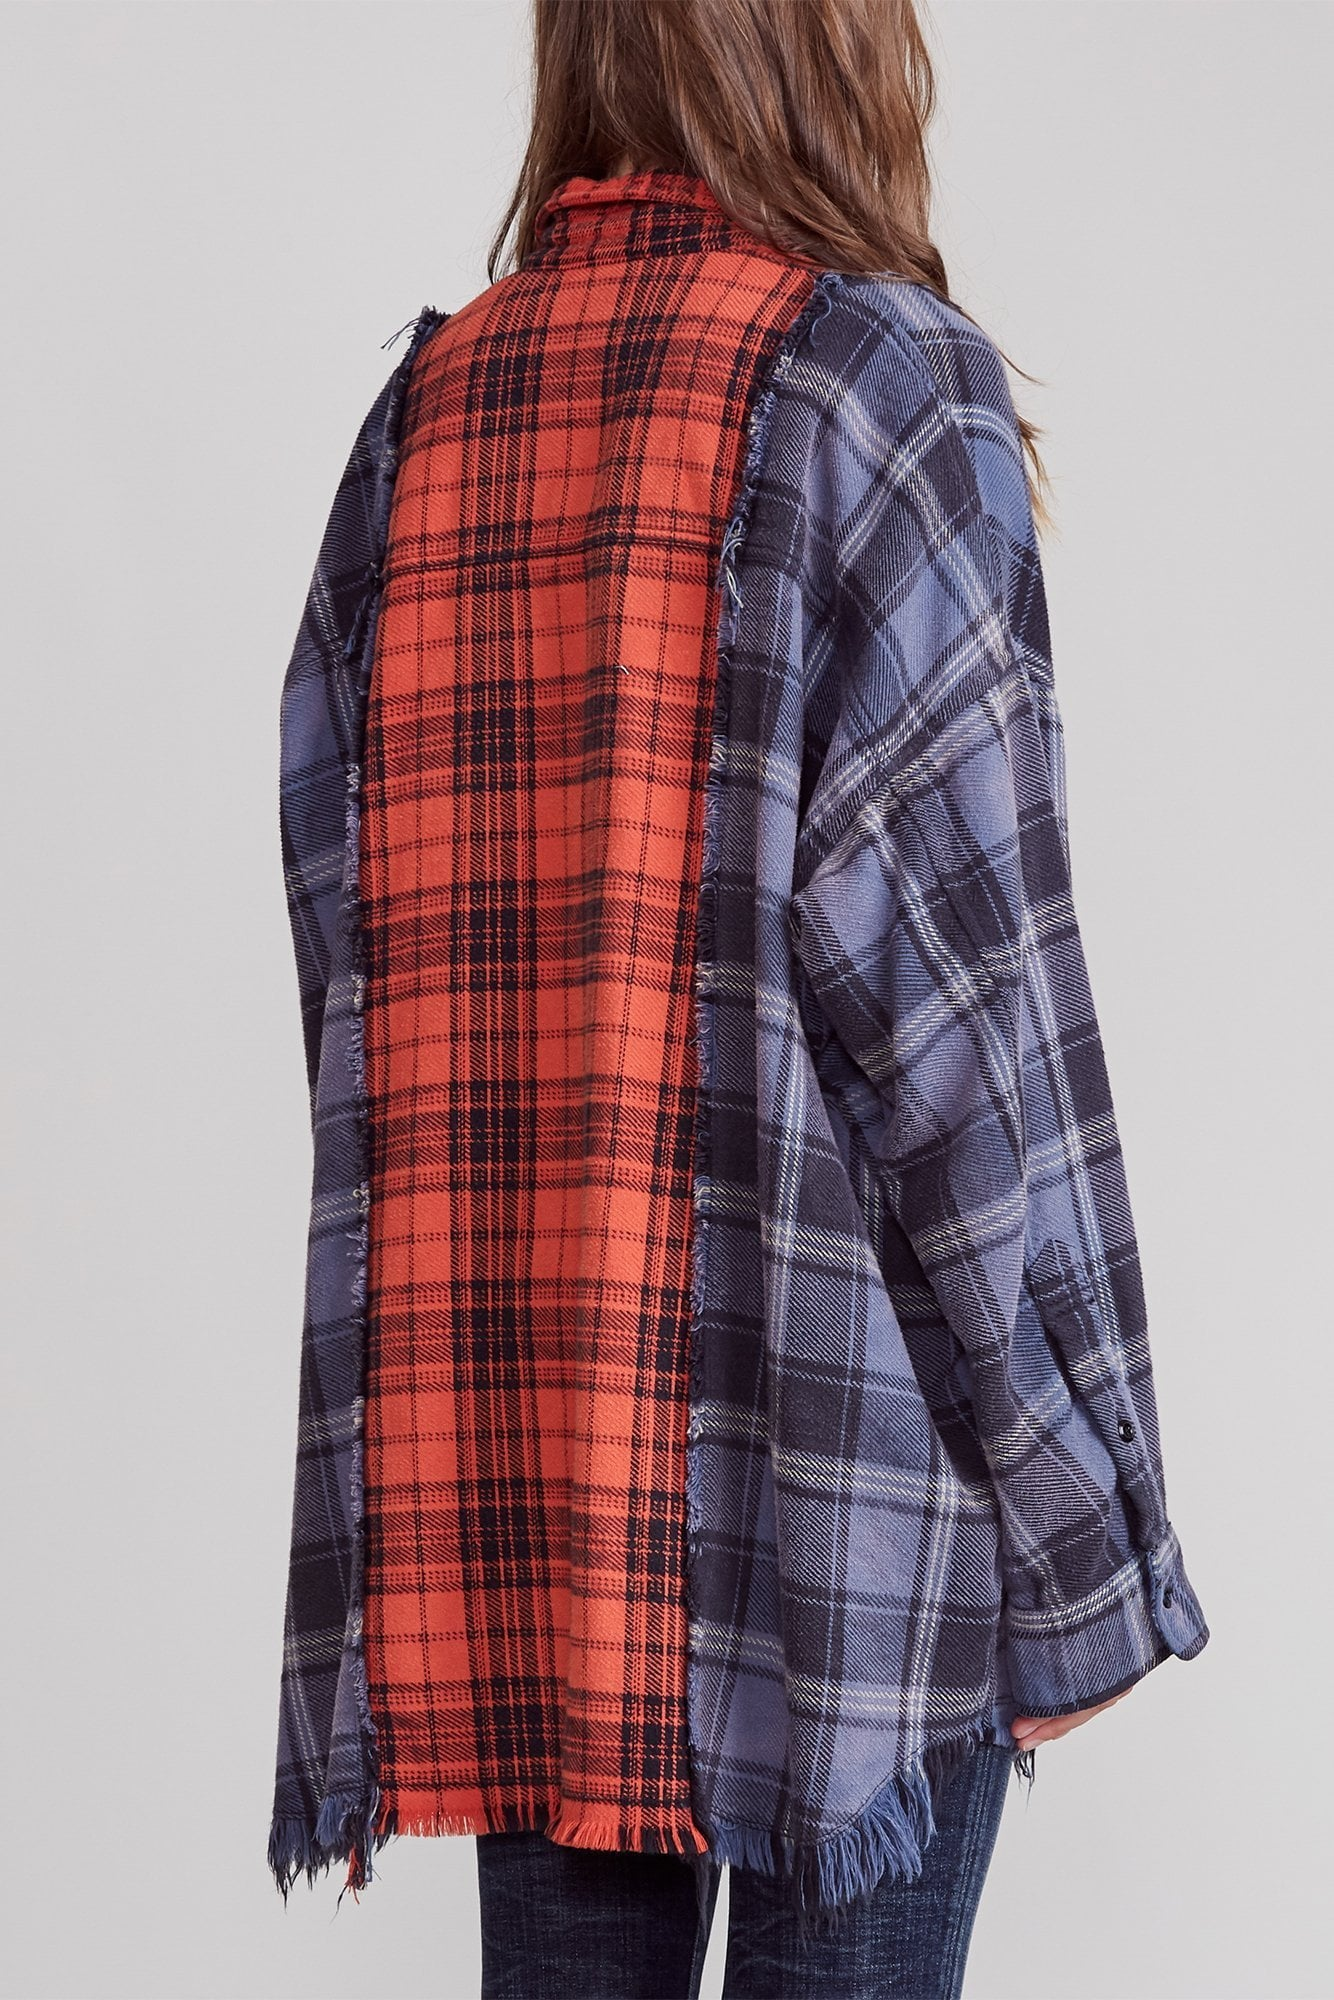 Drop Neck Combo Workshirt - Blue with Red Plaid